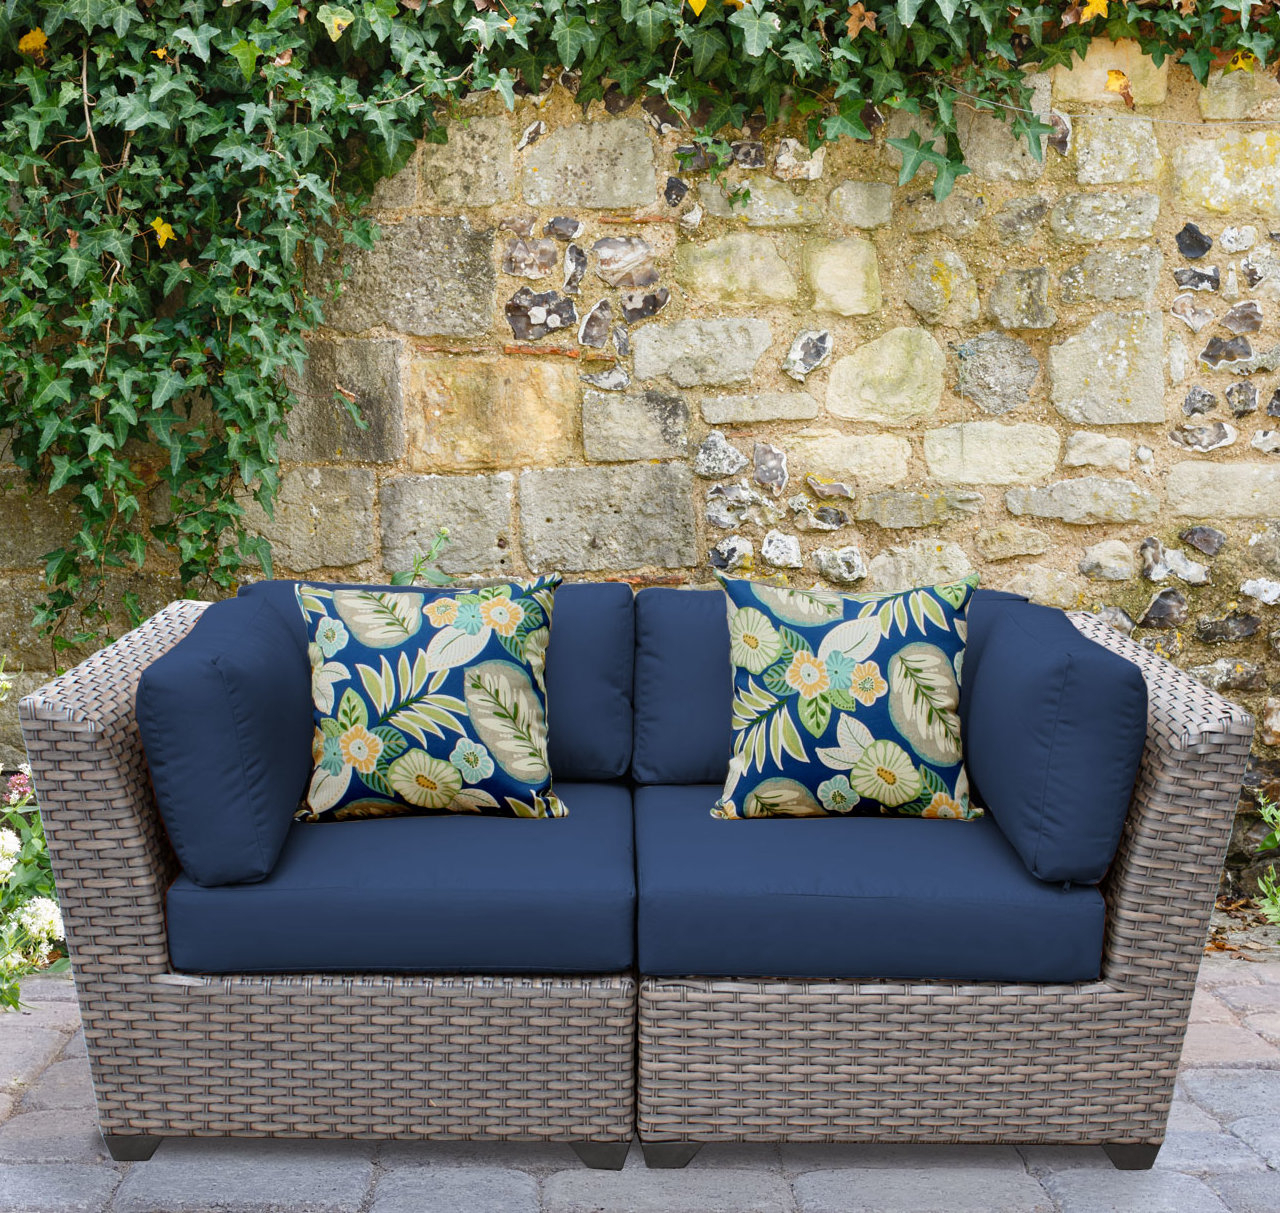 Meeks Patio Sofas With Cushions Intended For Most Up To Date Rosecliff Heights Meeks Patio Sofa With Cushions & Reviews (View 11 of 20)